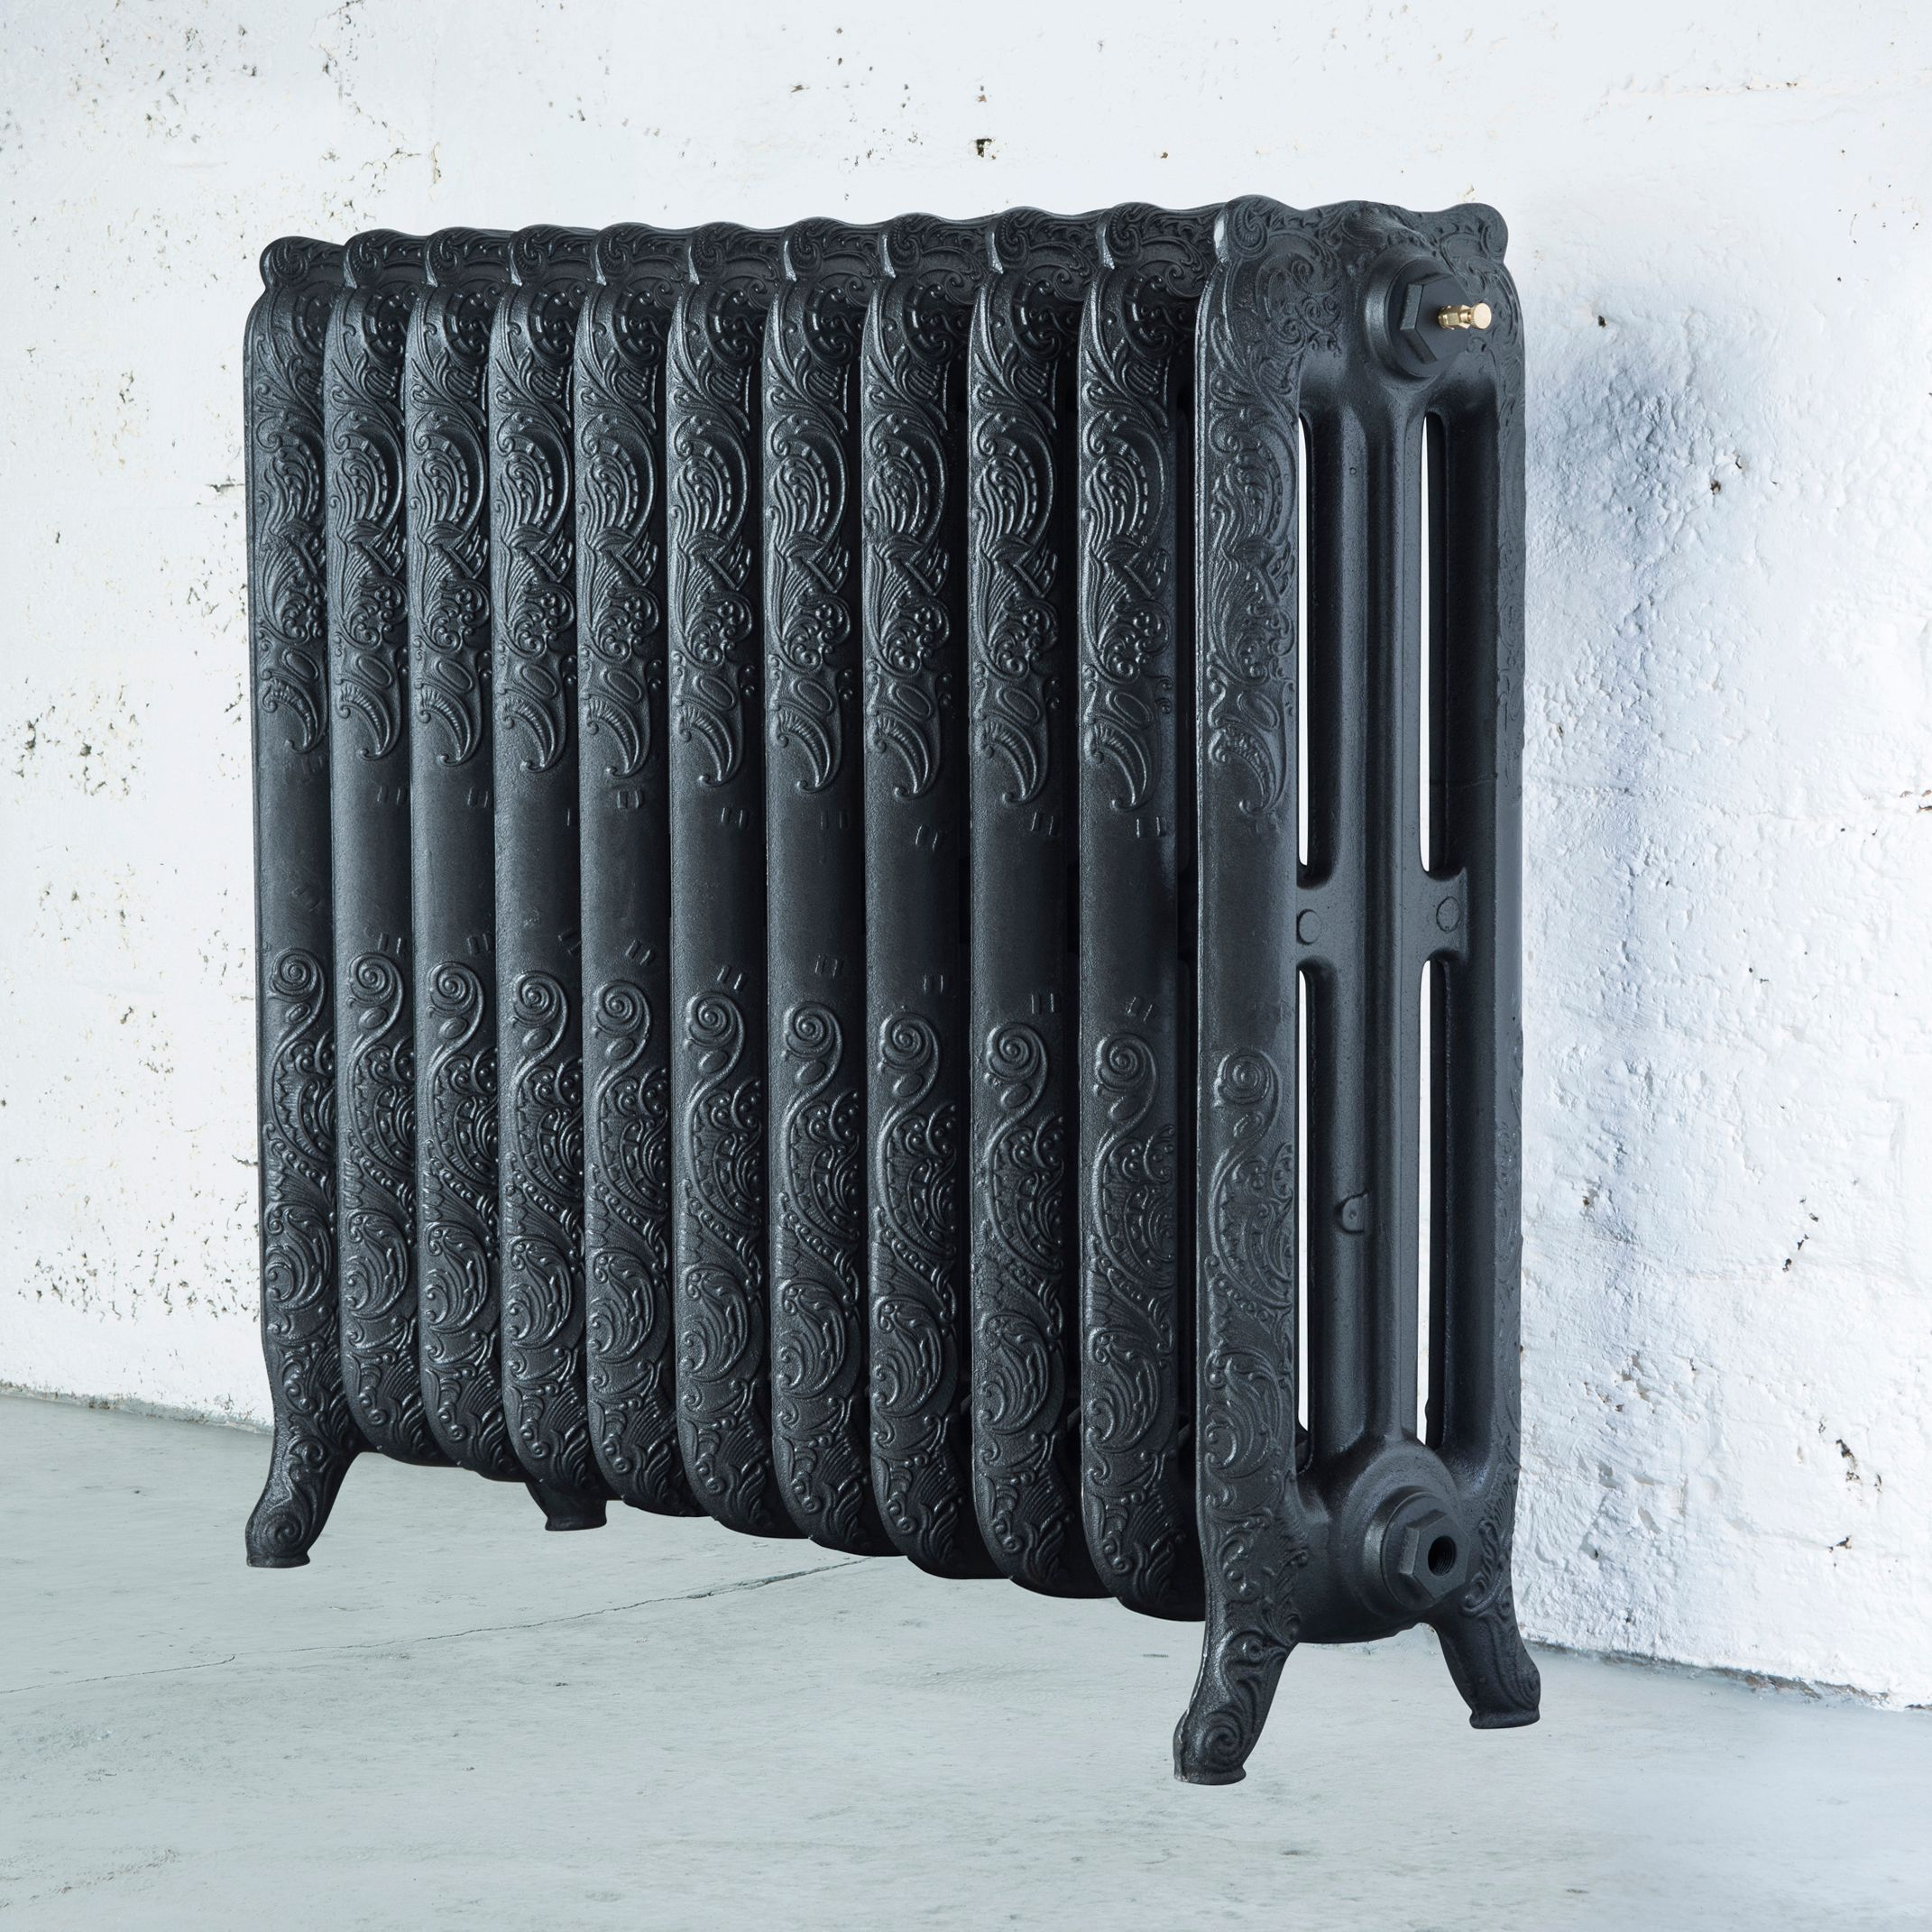 Arroll Montmartre 3 Column radiator, Pewter (W)914mm (H)760mm